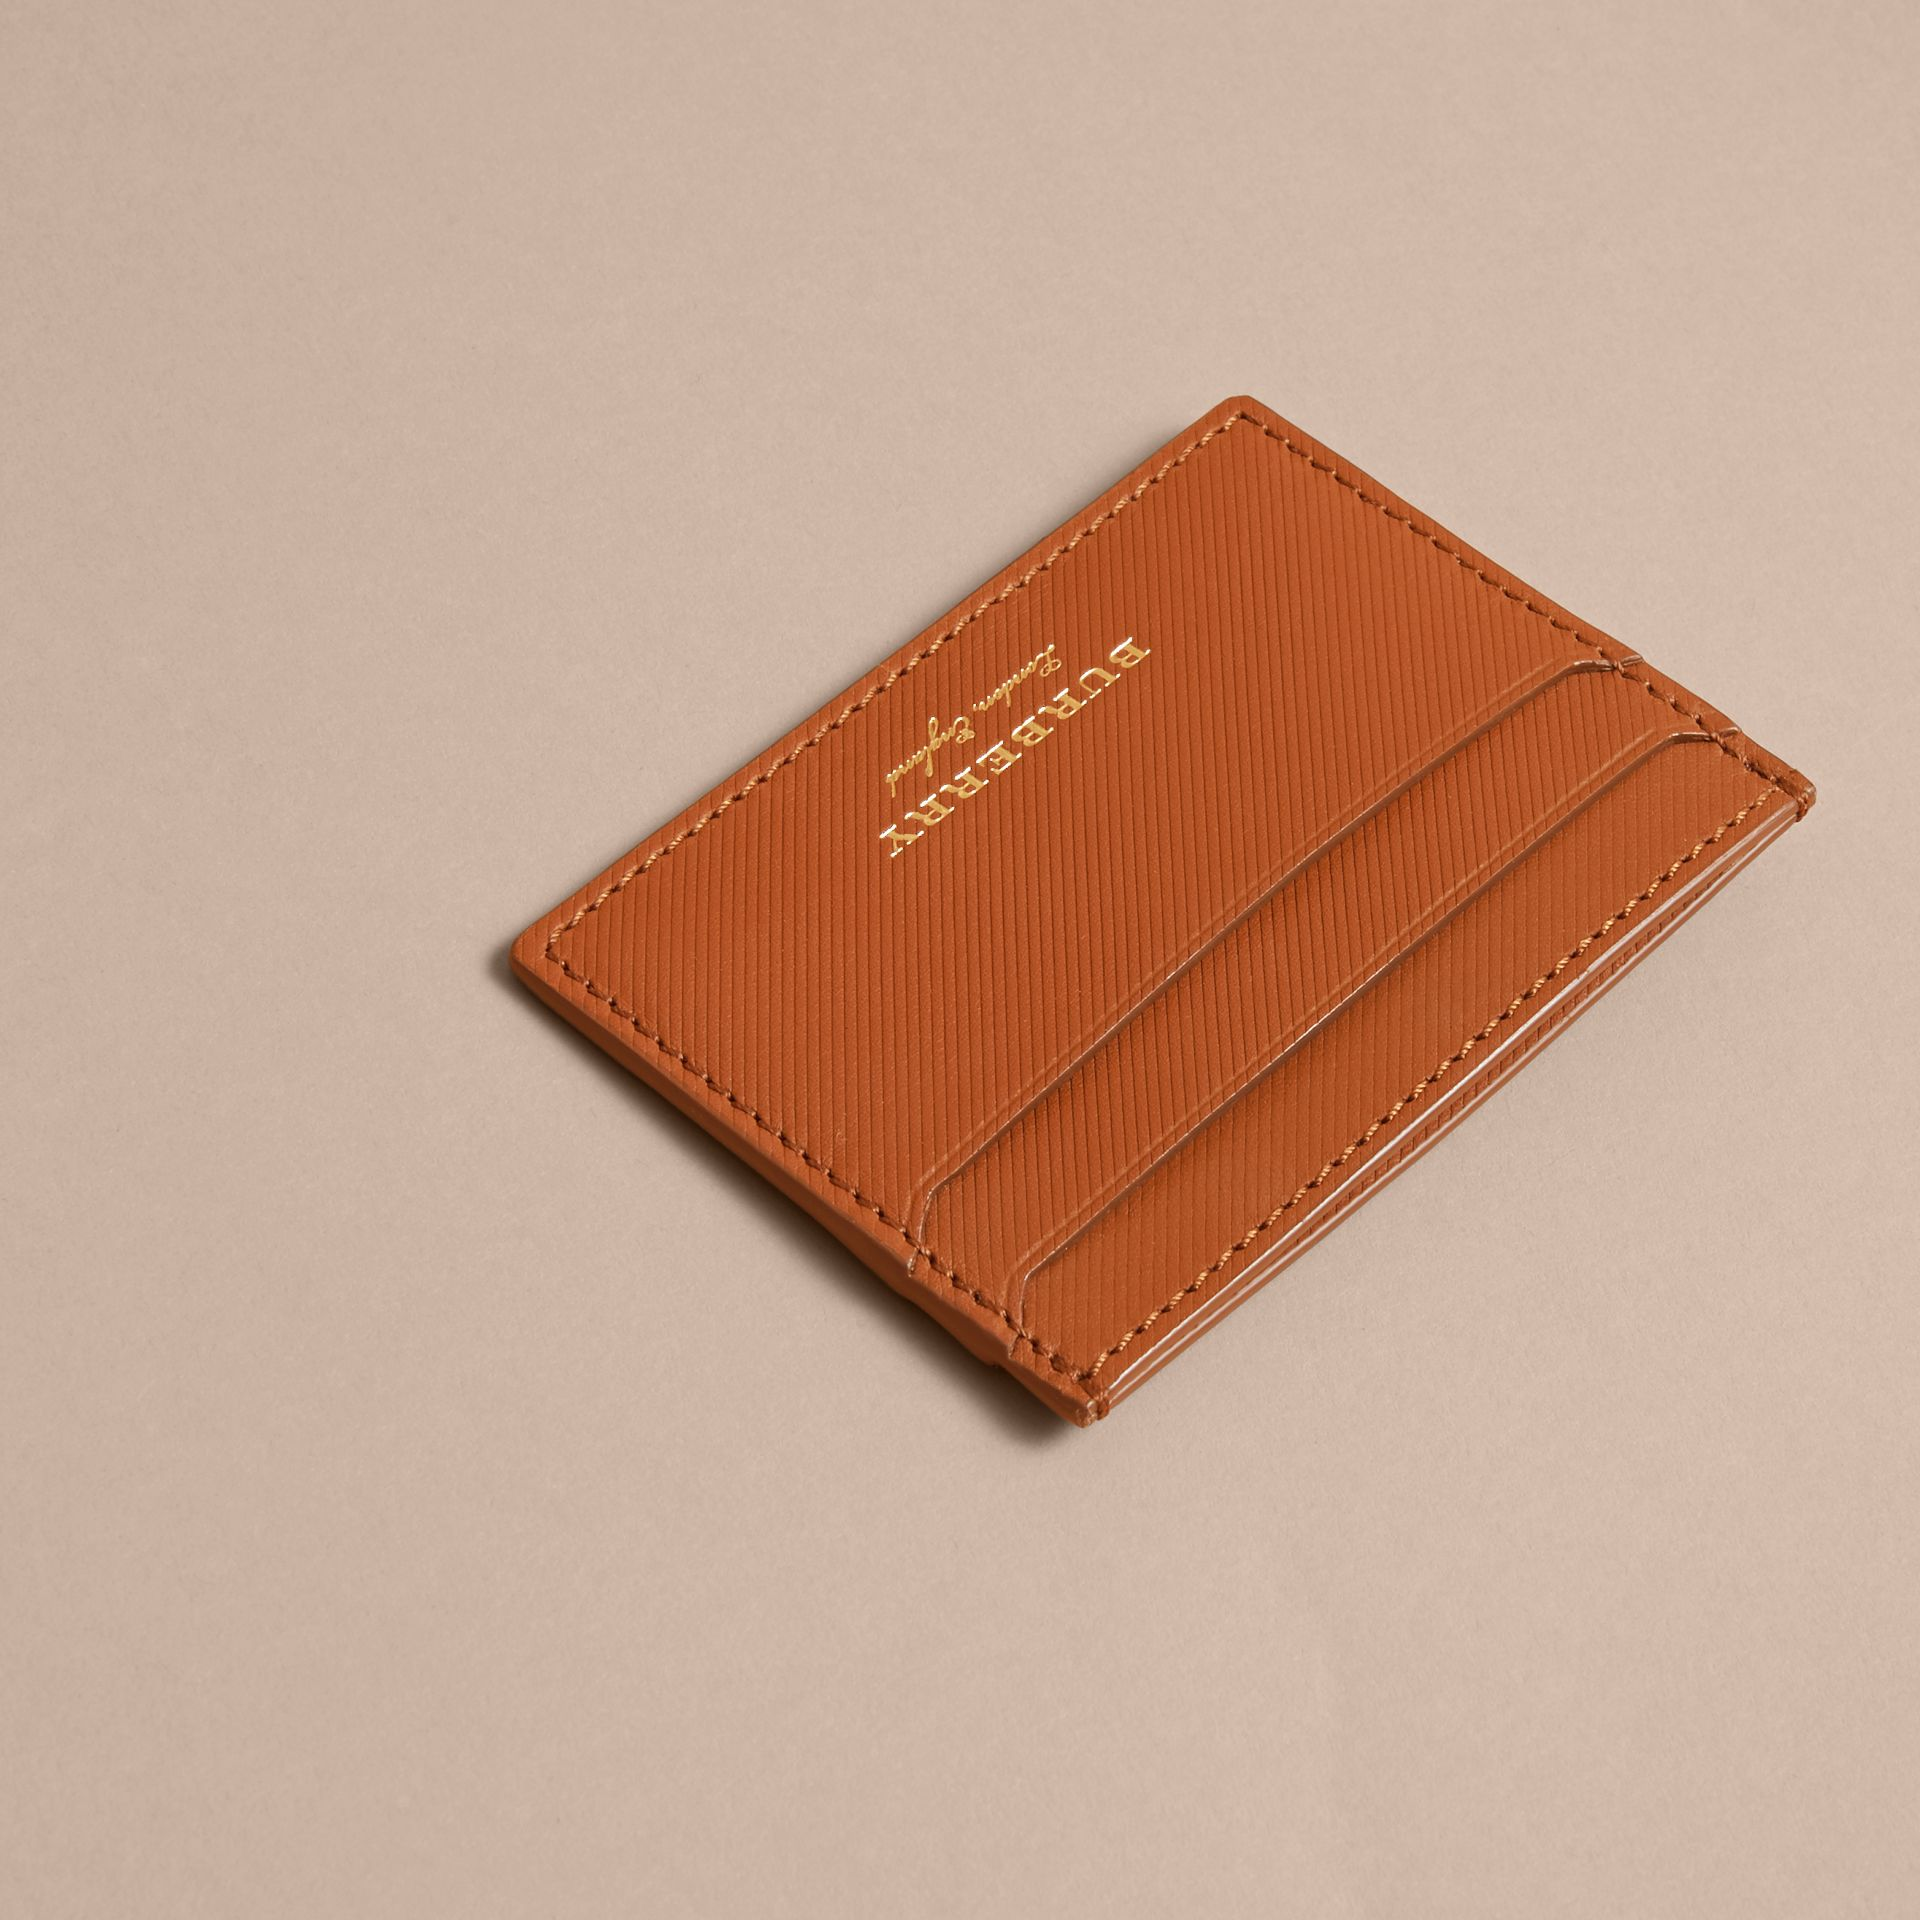 Trench Leather Card Case in Tan - Men | Burberry Canada - gallery image 2